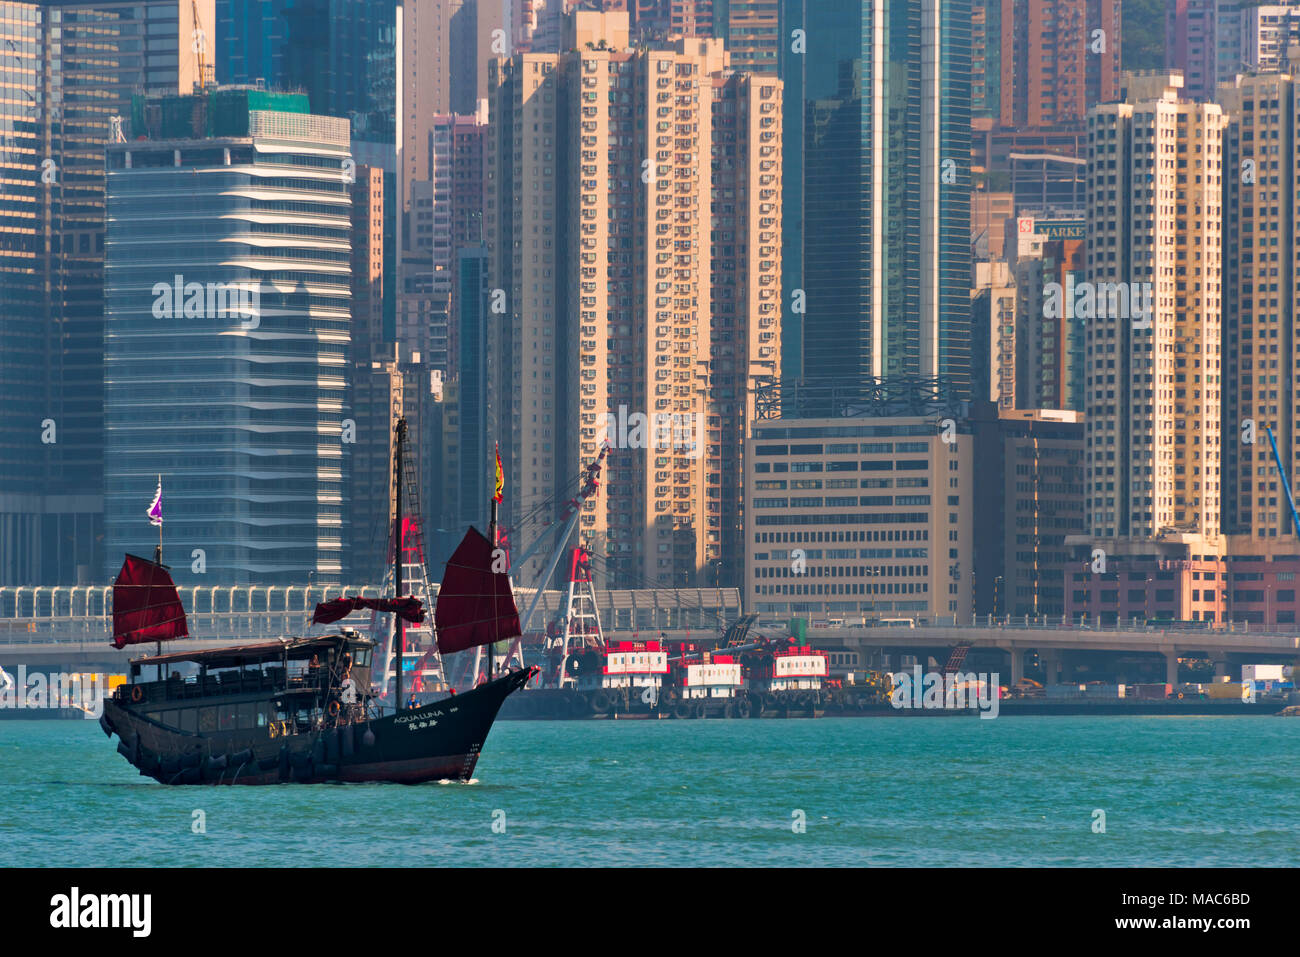 Junk boat and high rises in Victoria Bay, Hong Kong, China - Stock Image